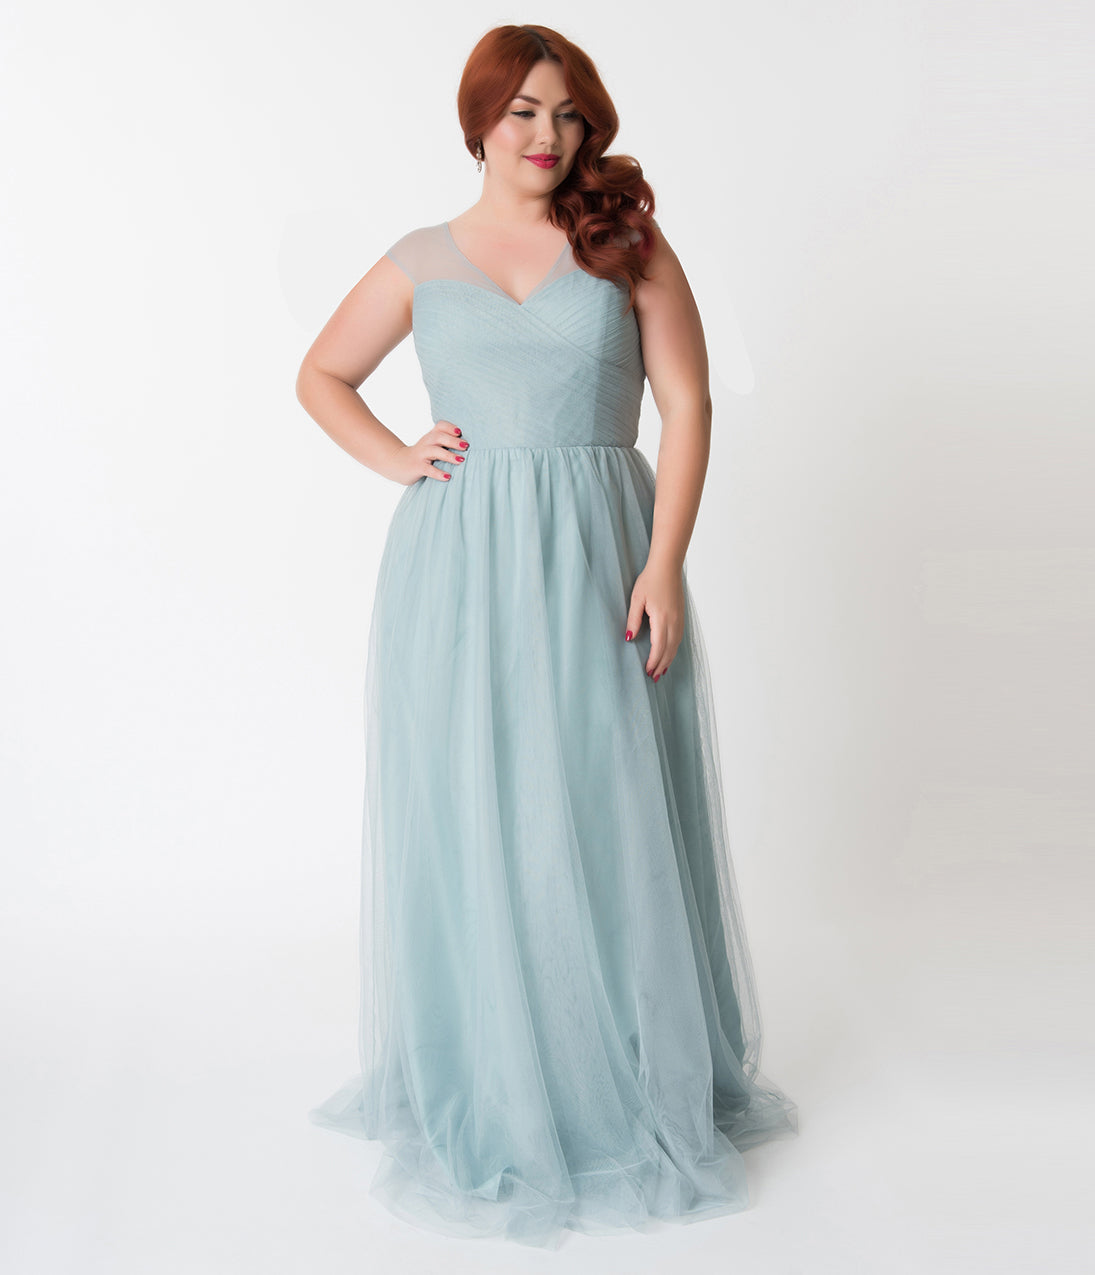 1950s Formal Dresses & Evening Gowns to Buy Plus Size Robin Blue Mesh Wrapped Sweetheart Neckline Long Dress $110.00 AT vintagedancer.com